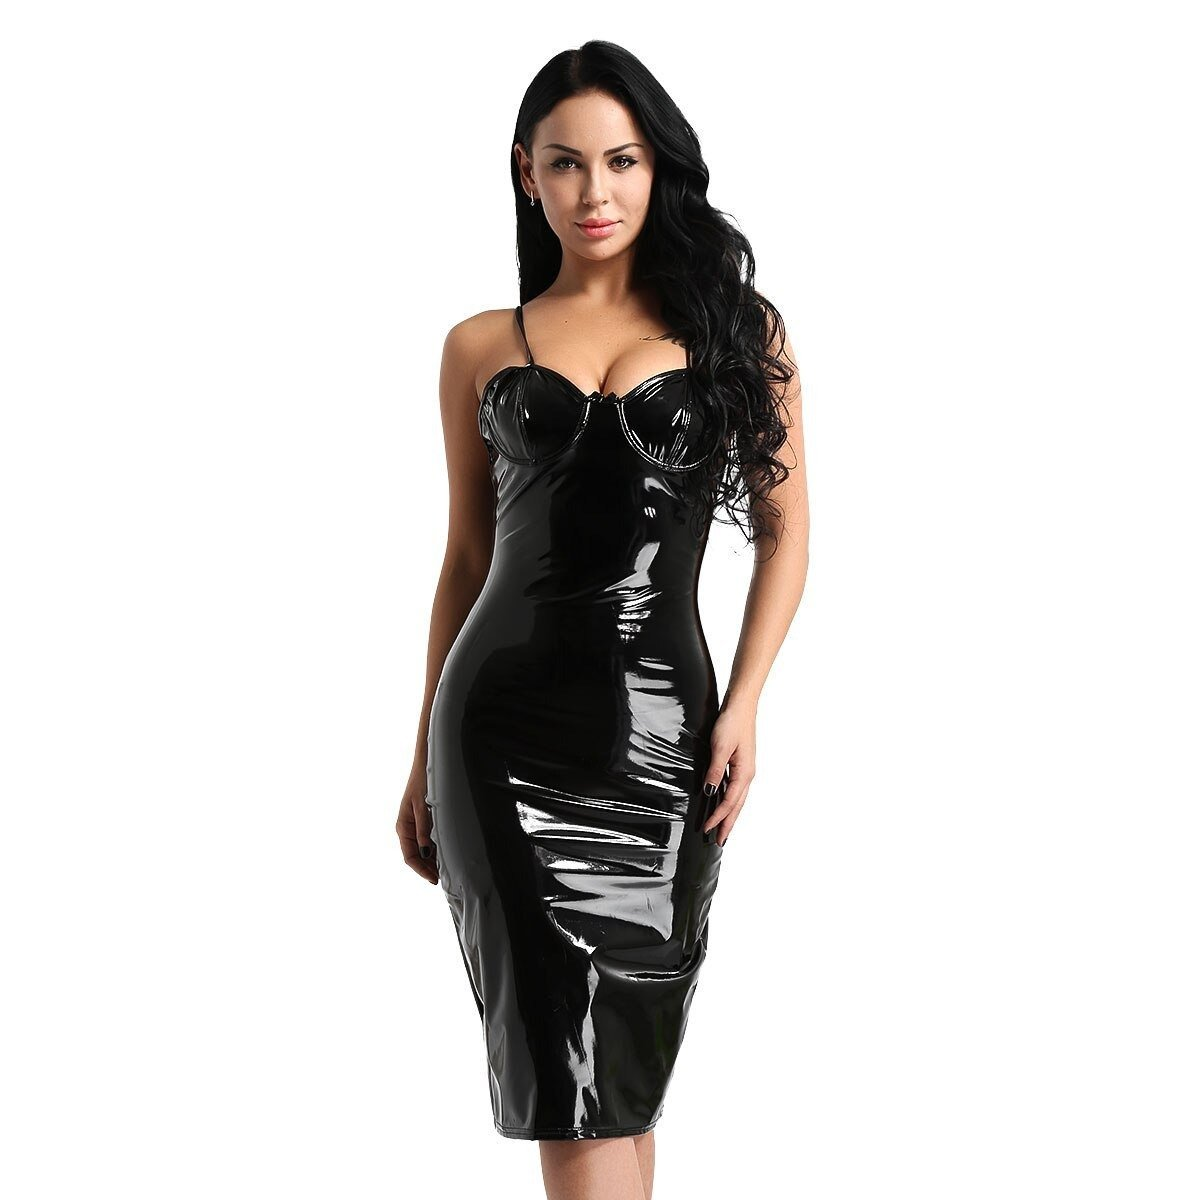 Womens Gothic Dress / Wetlook Faux Leather Dress with G-String - HARD'N'HEAVY